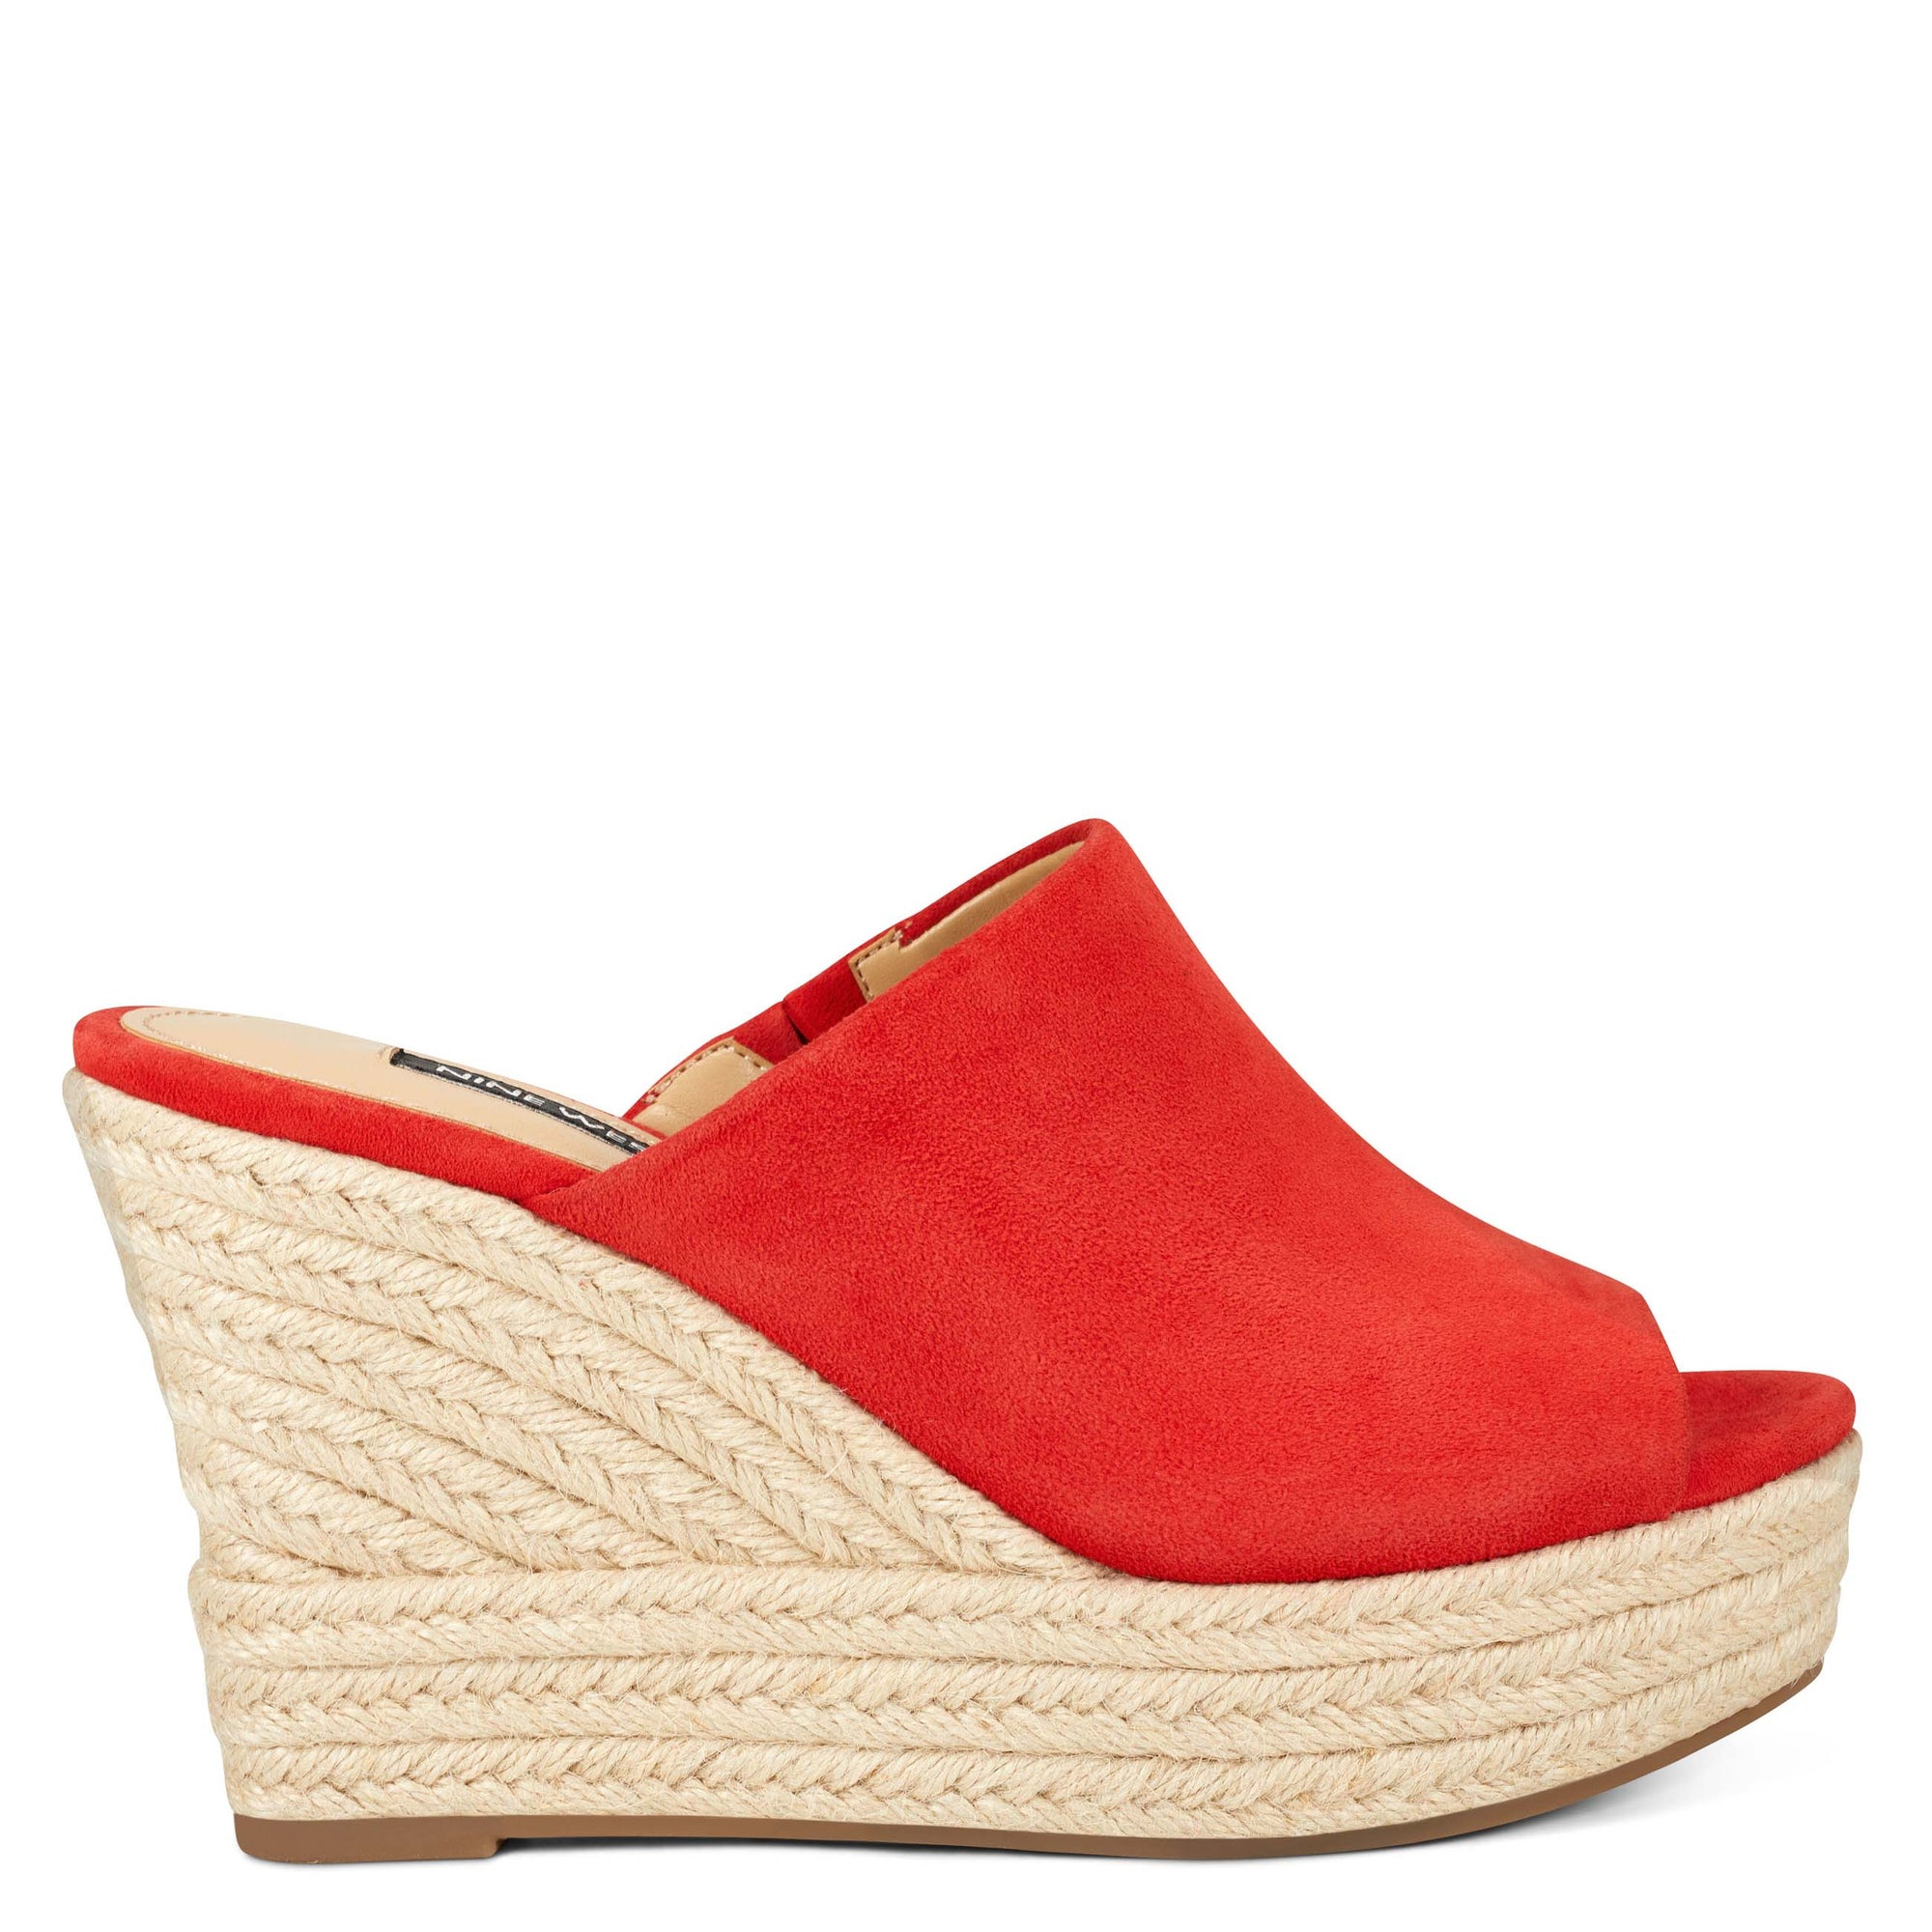 Denna Espadrille Slide Sandals